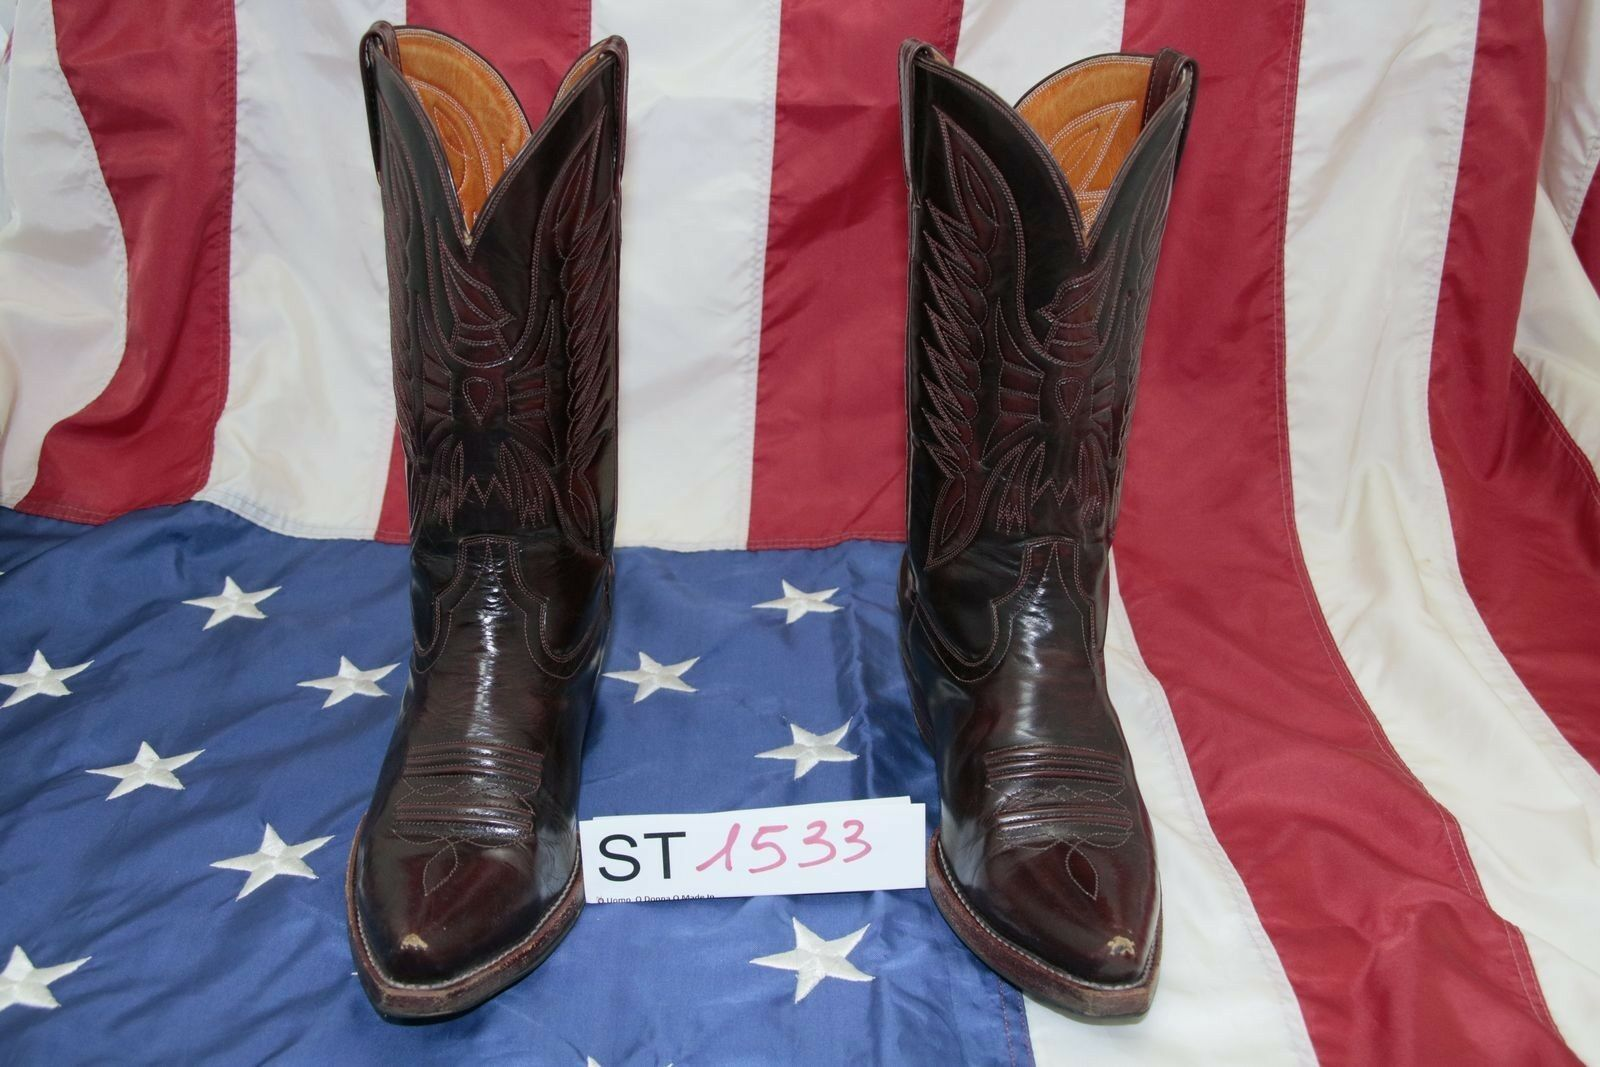 Stivali N.45 Country (Cod. ST1533) Boots Western Country N.45 Cowboy bikers Uomo usato bf3aa6